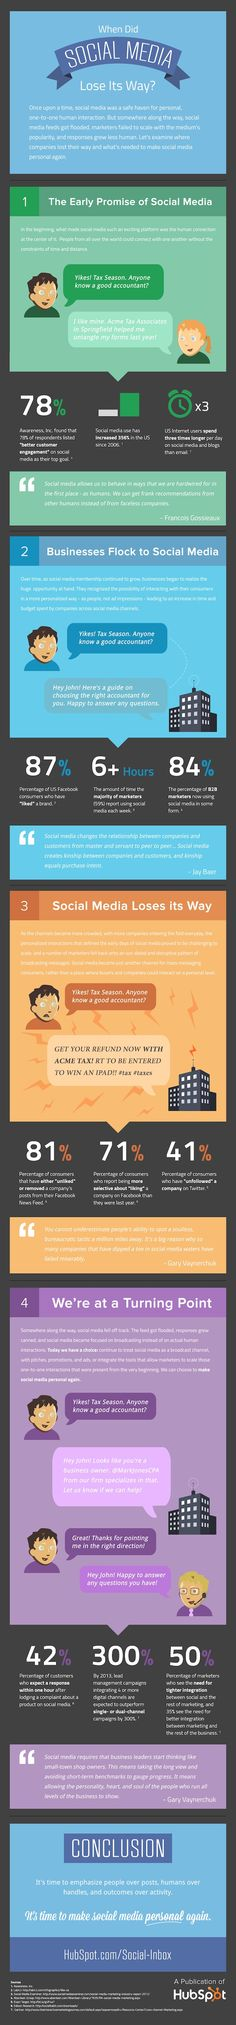 Social Media - When Did Social Media Lose Its Way? [Infographic] : MarketingProfs Article